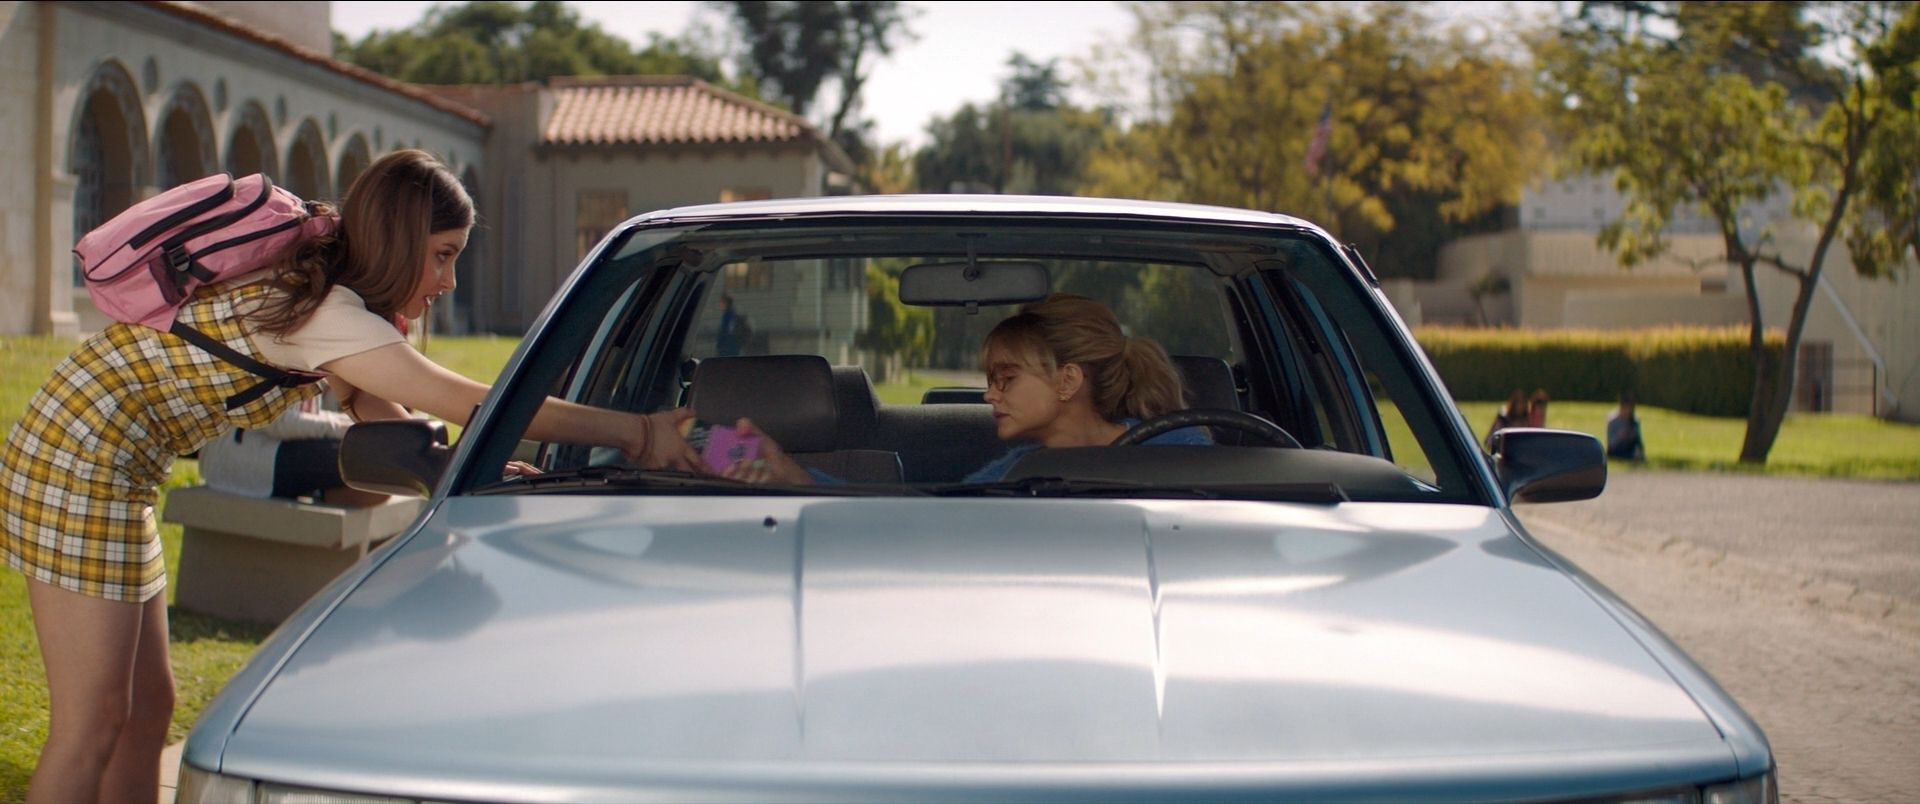 Cassie takes the phone of a teenage girl as she lures the girl into her car as part of her plot for revenge in Promising Young Woman